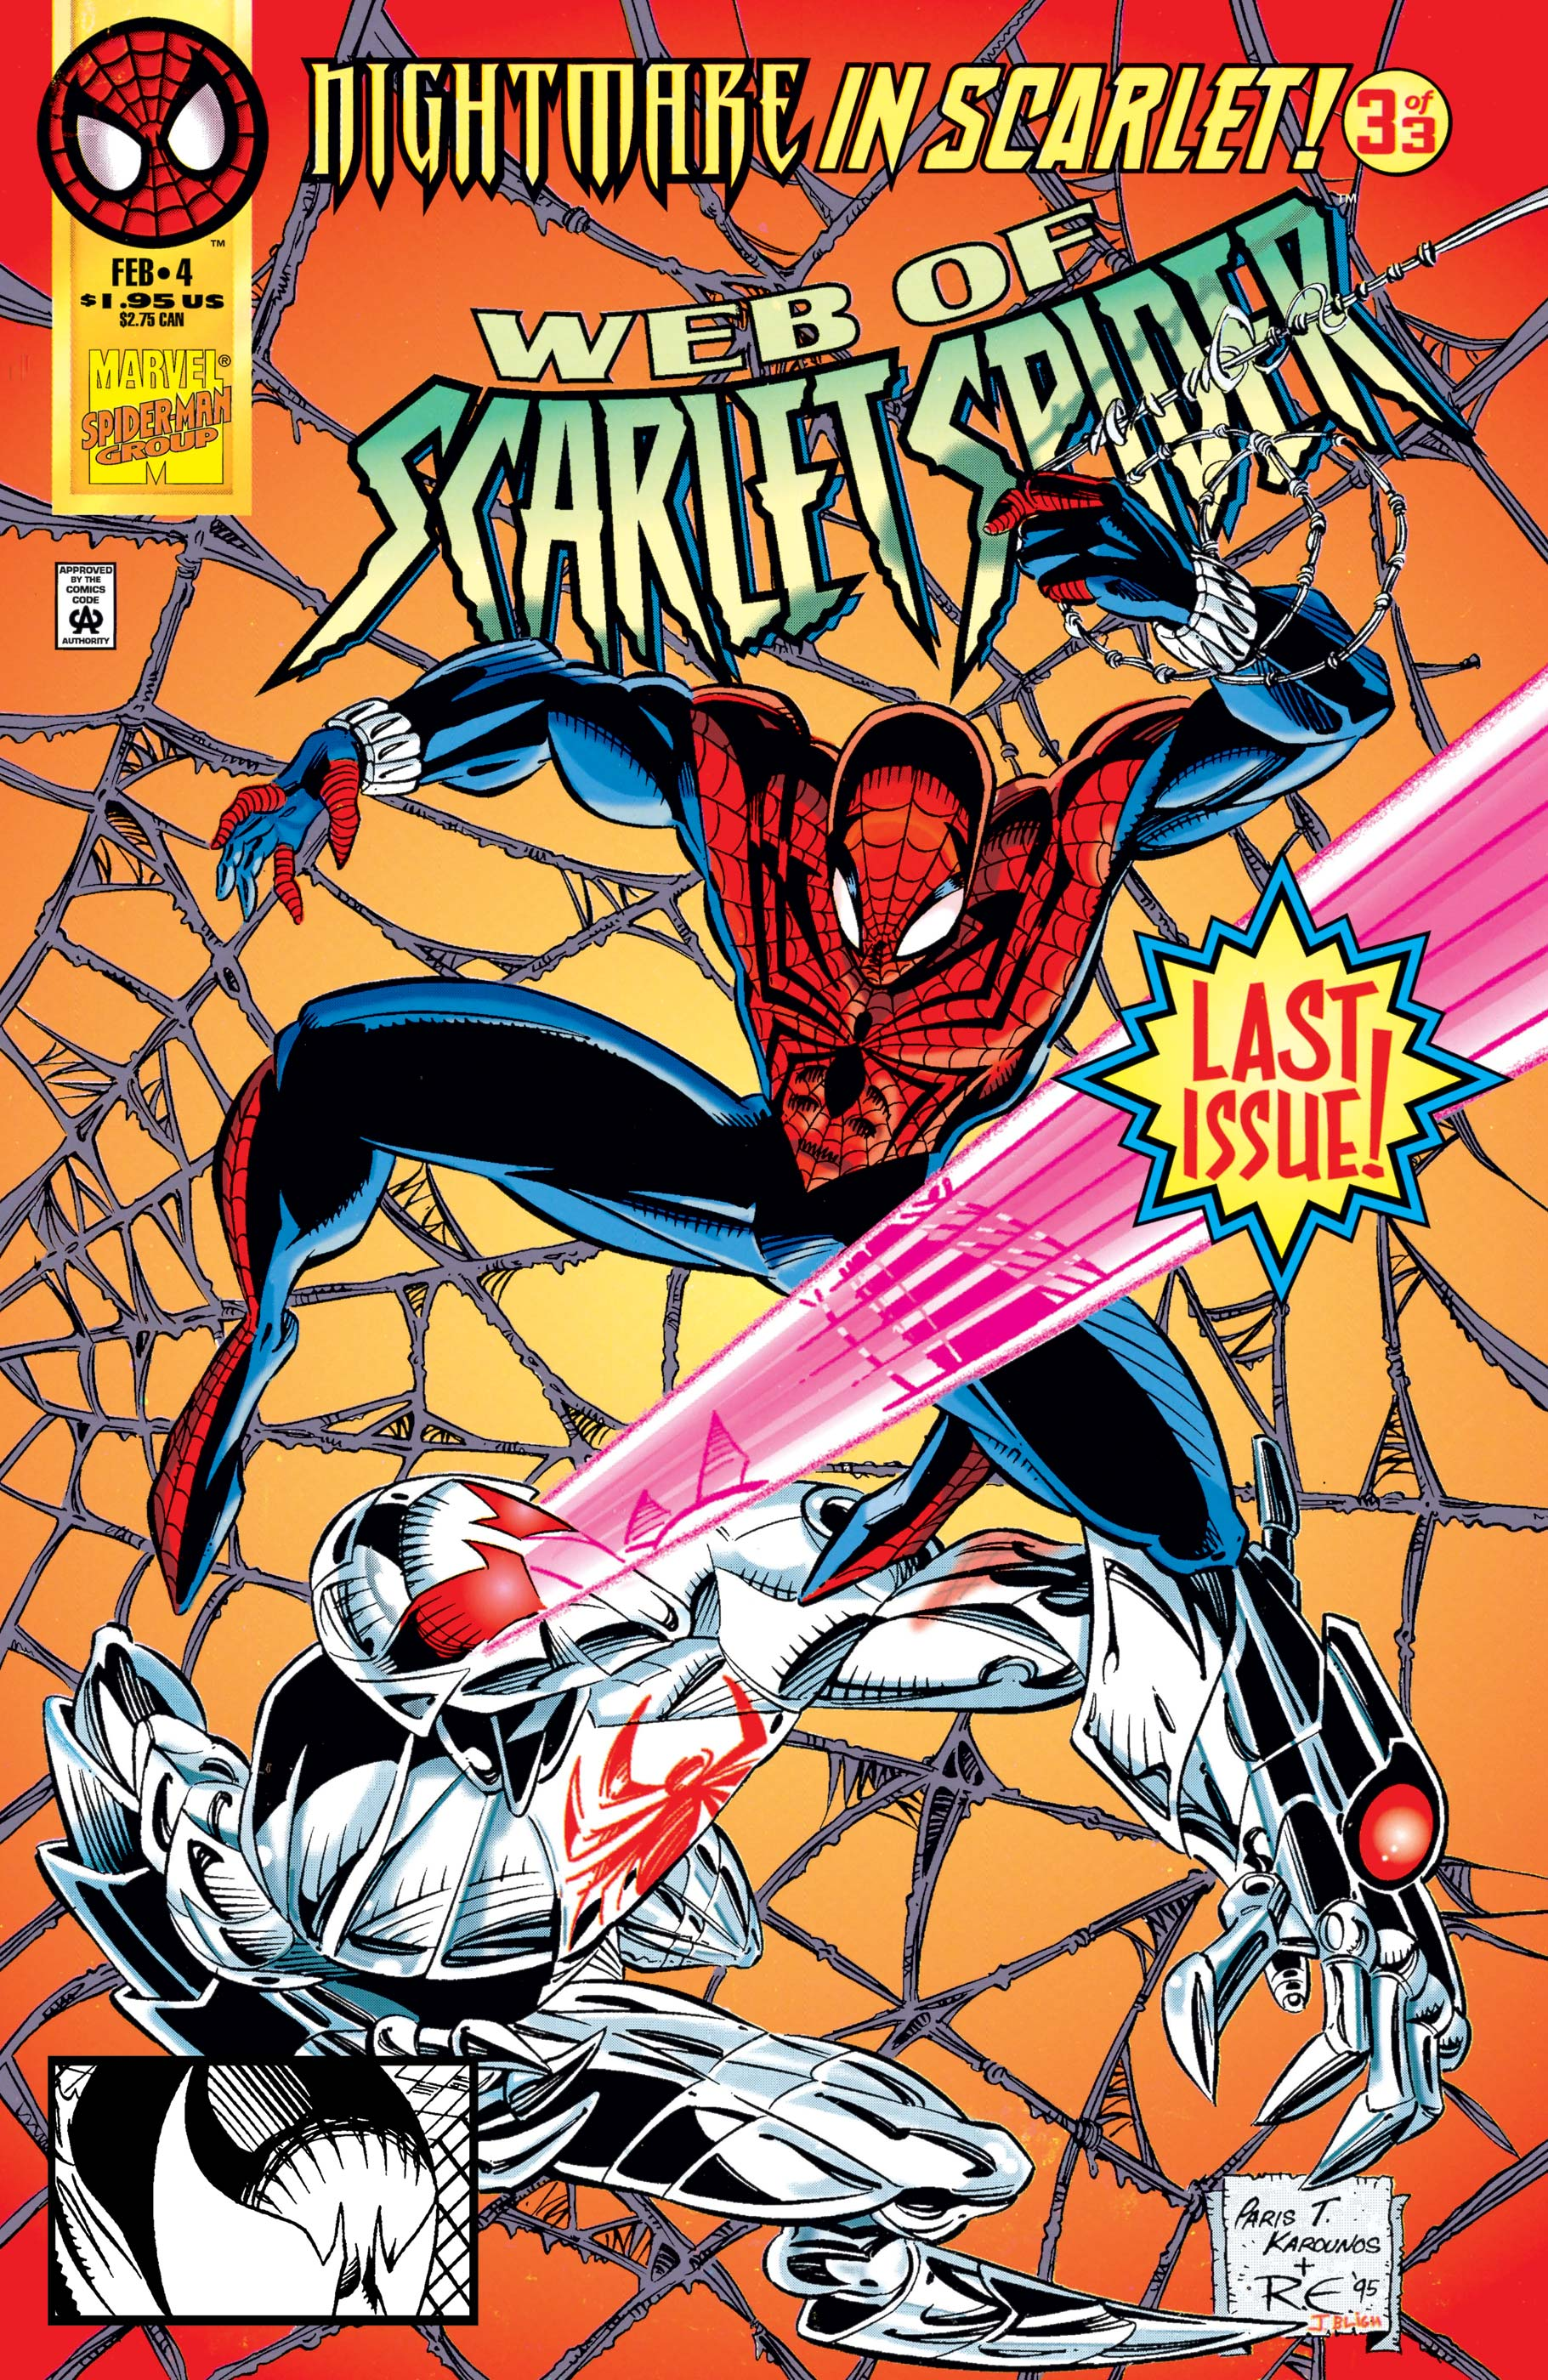 Web of Scarlet Spider (1995) #4